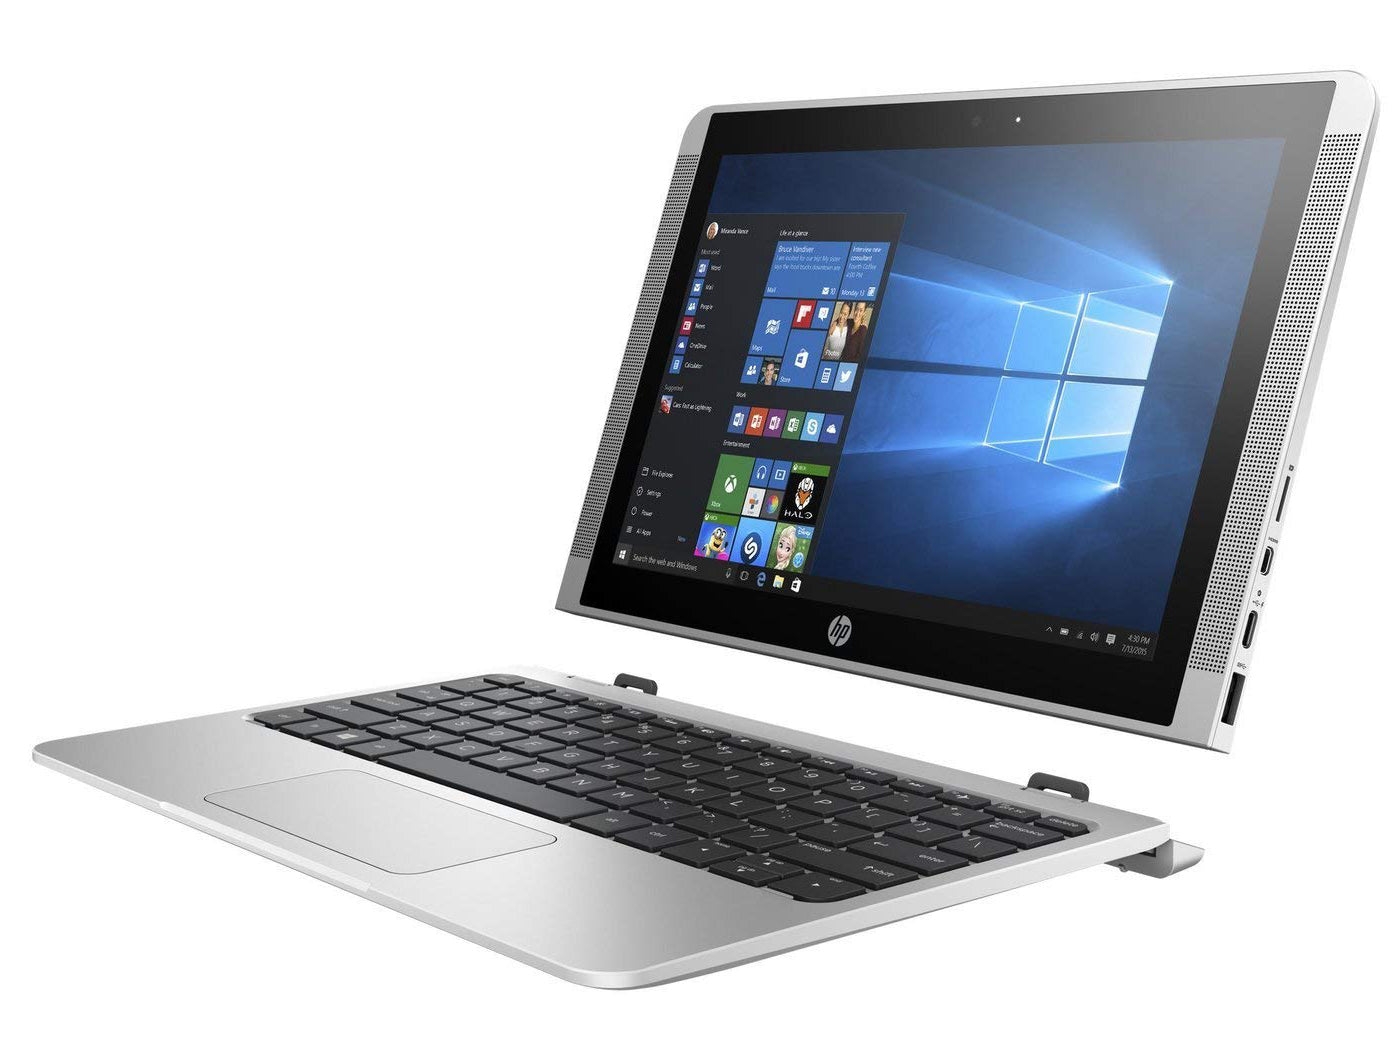 "Hp Ordinateur Portable - 10.1"" - X2 Detachable - Intel Atom - 4Go Ram - 64 Go - Argent"